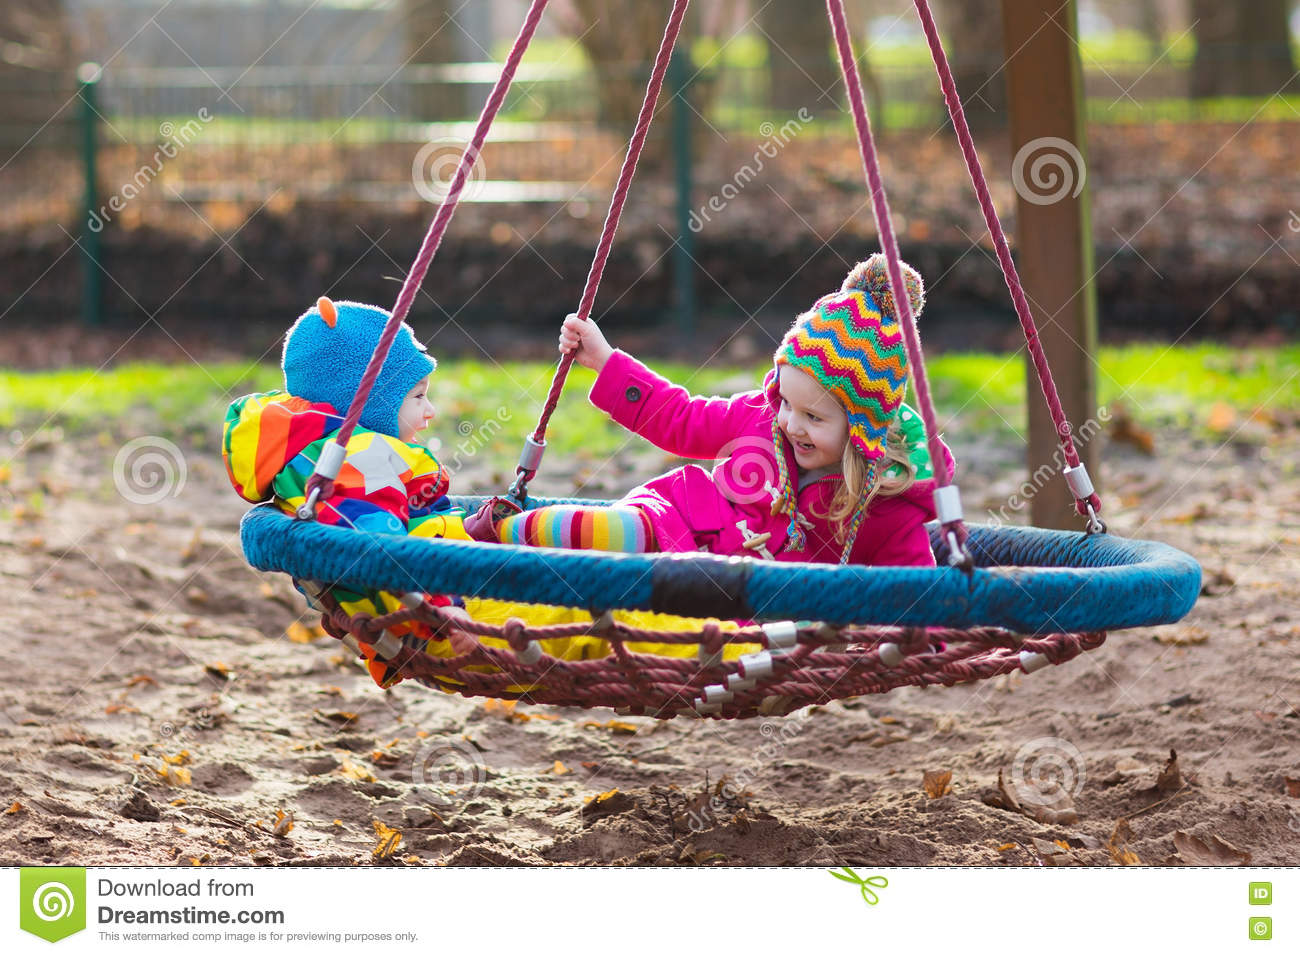 Kinder Garden: Kids On Playground Swing Stock Photo. Image Of Amusement